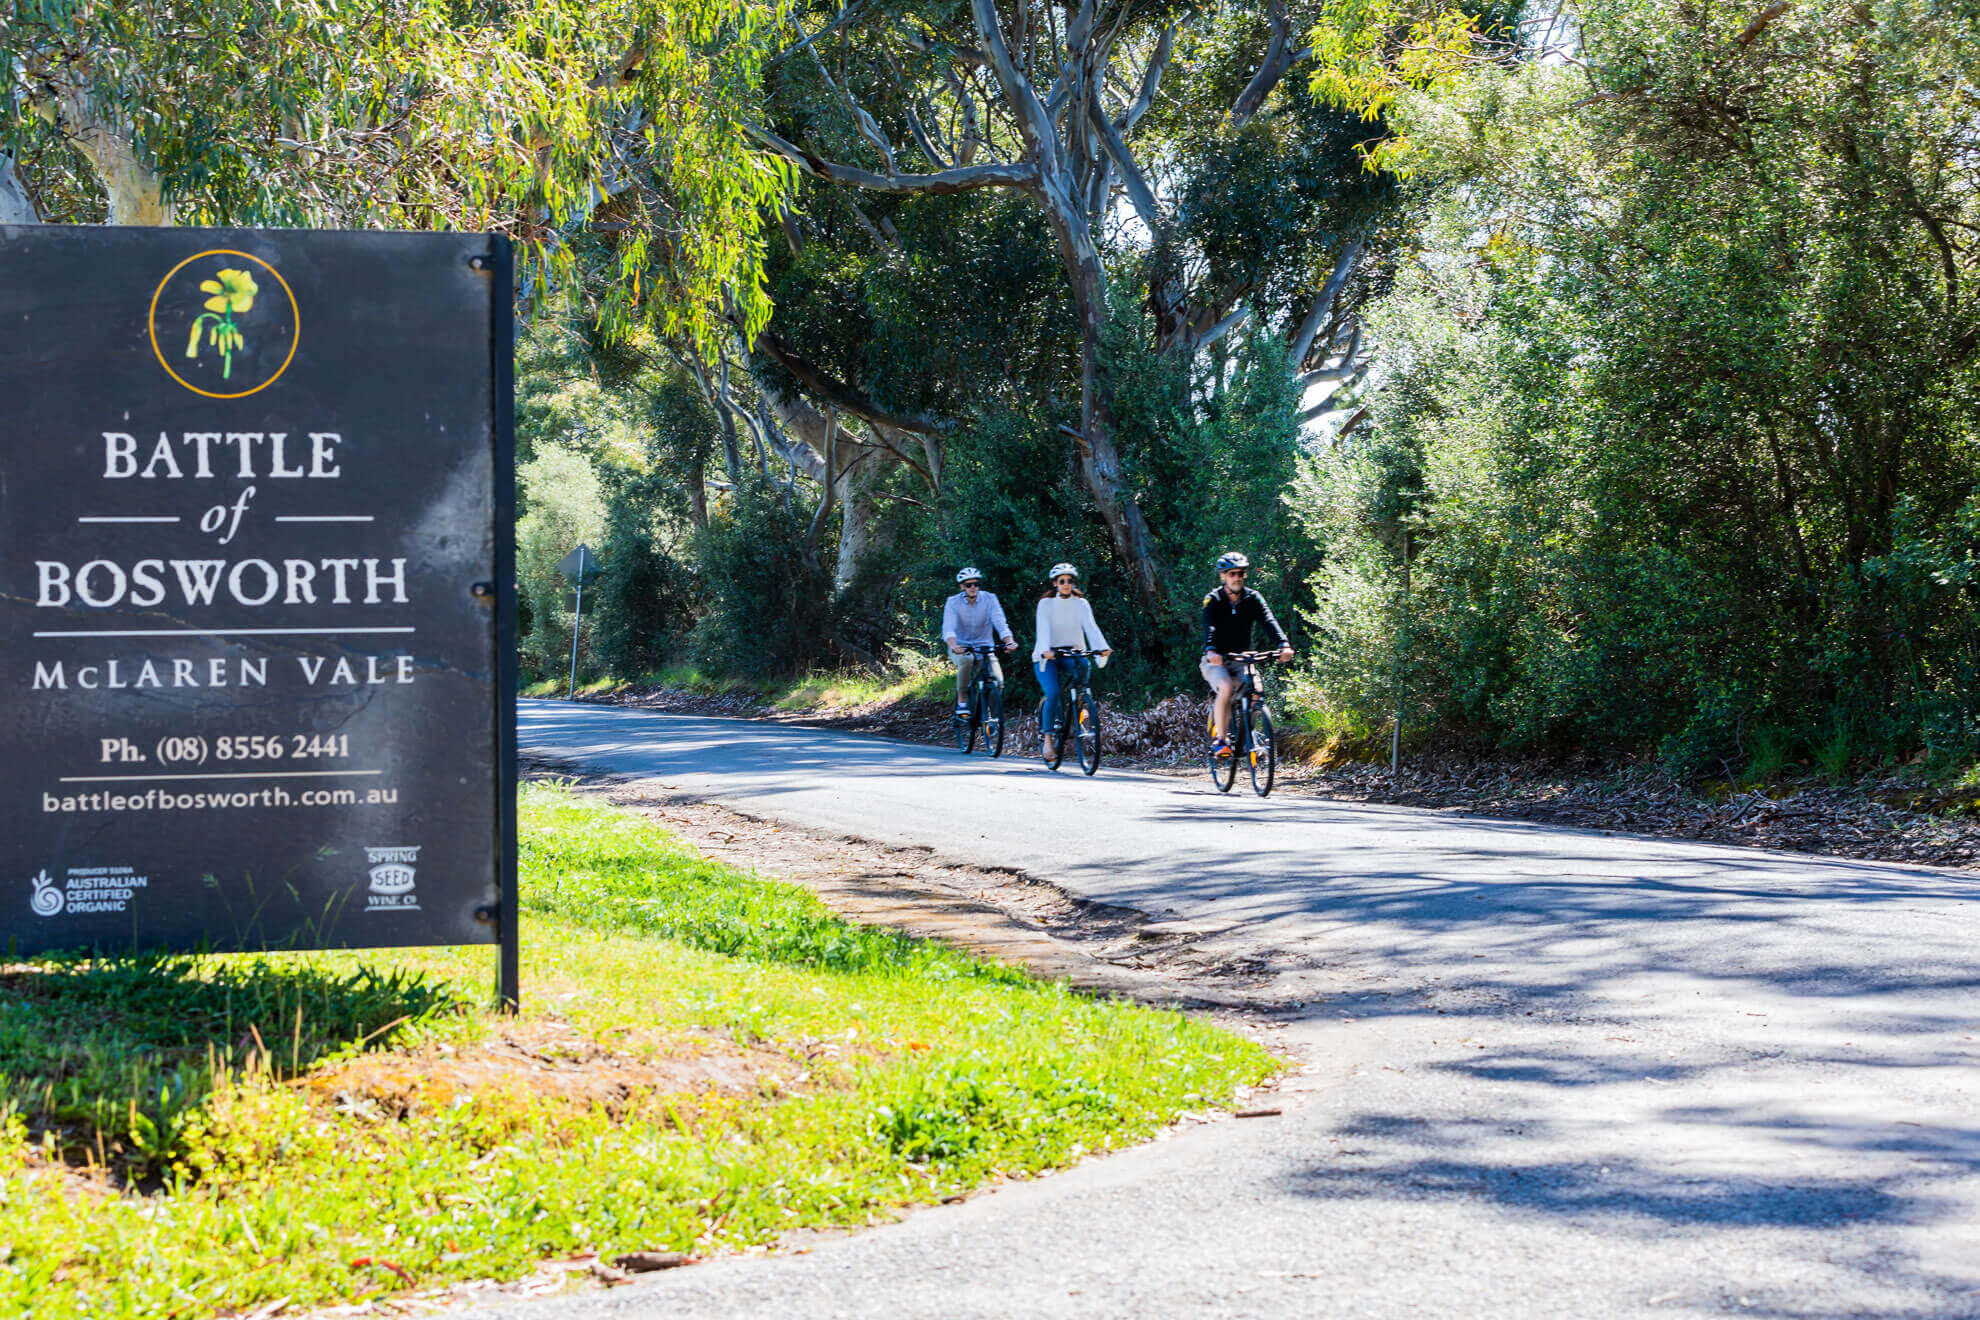 Visit Battle of Bosworth on your eBike in McLaren Vale